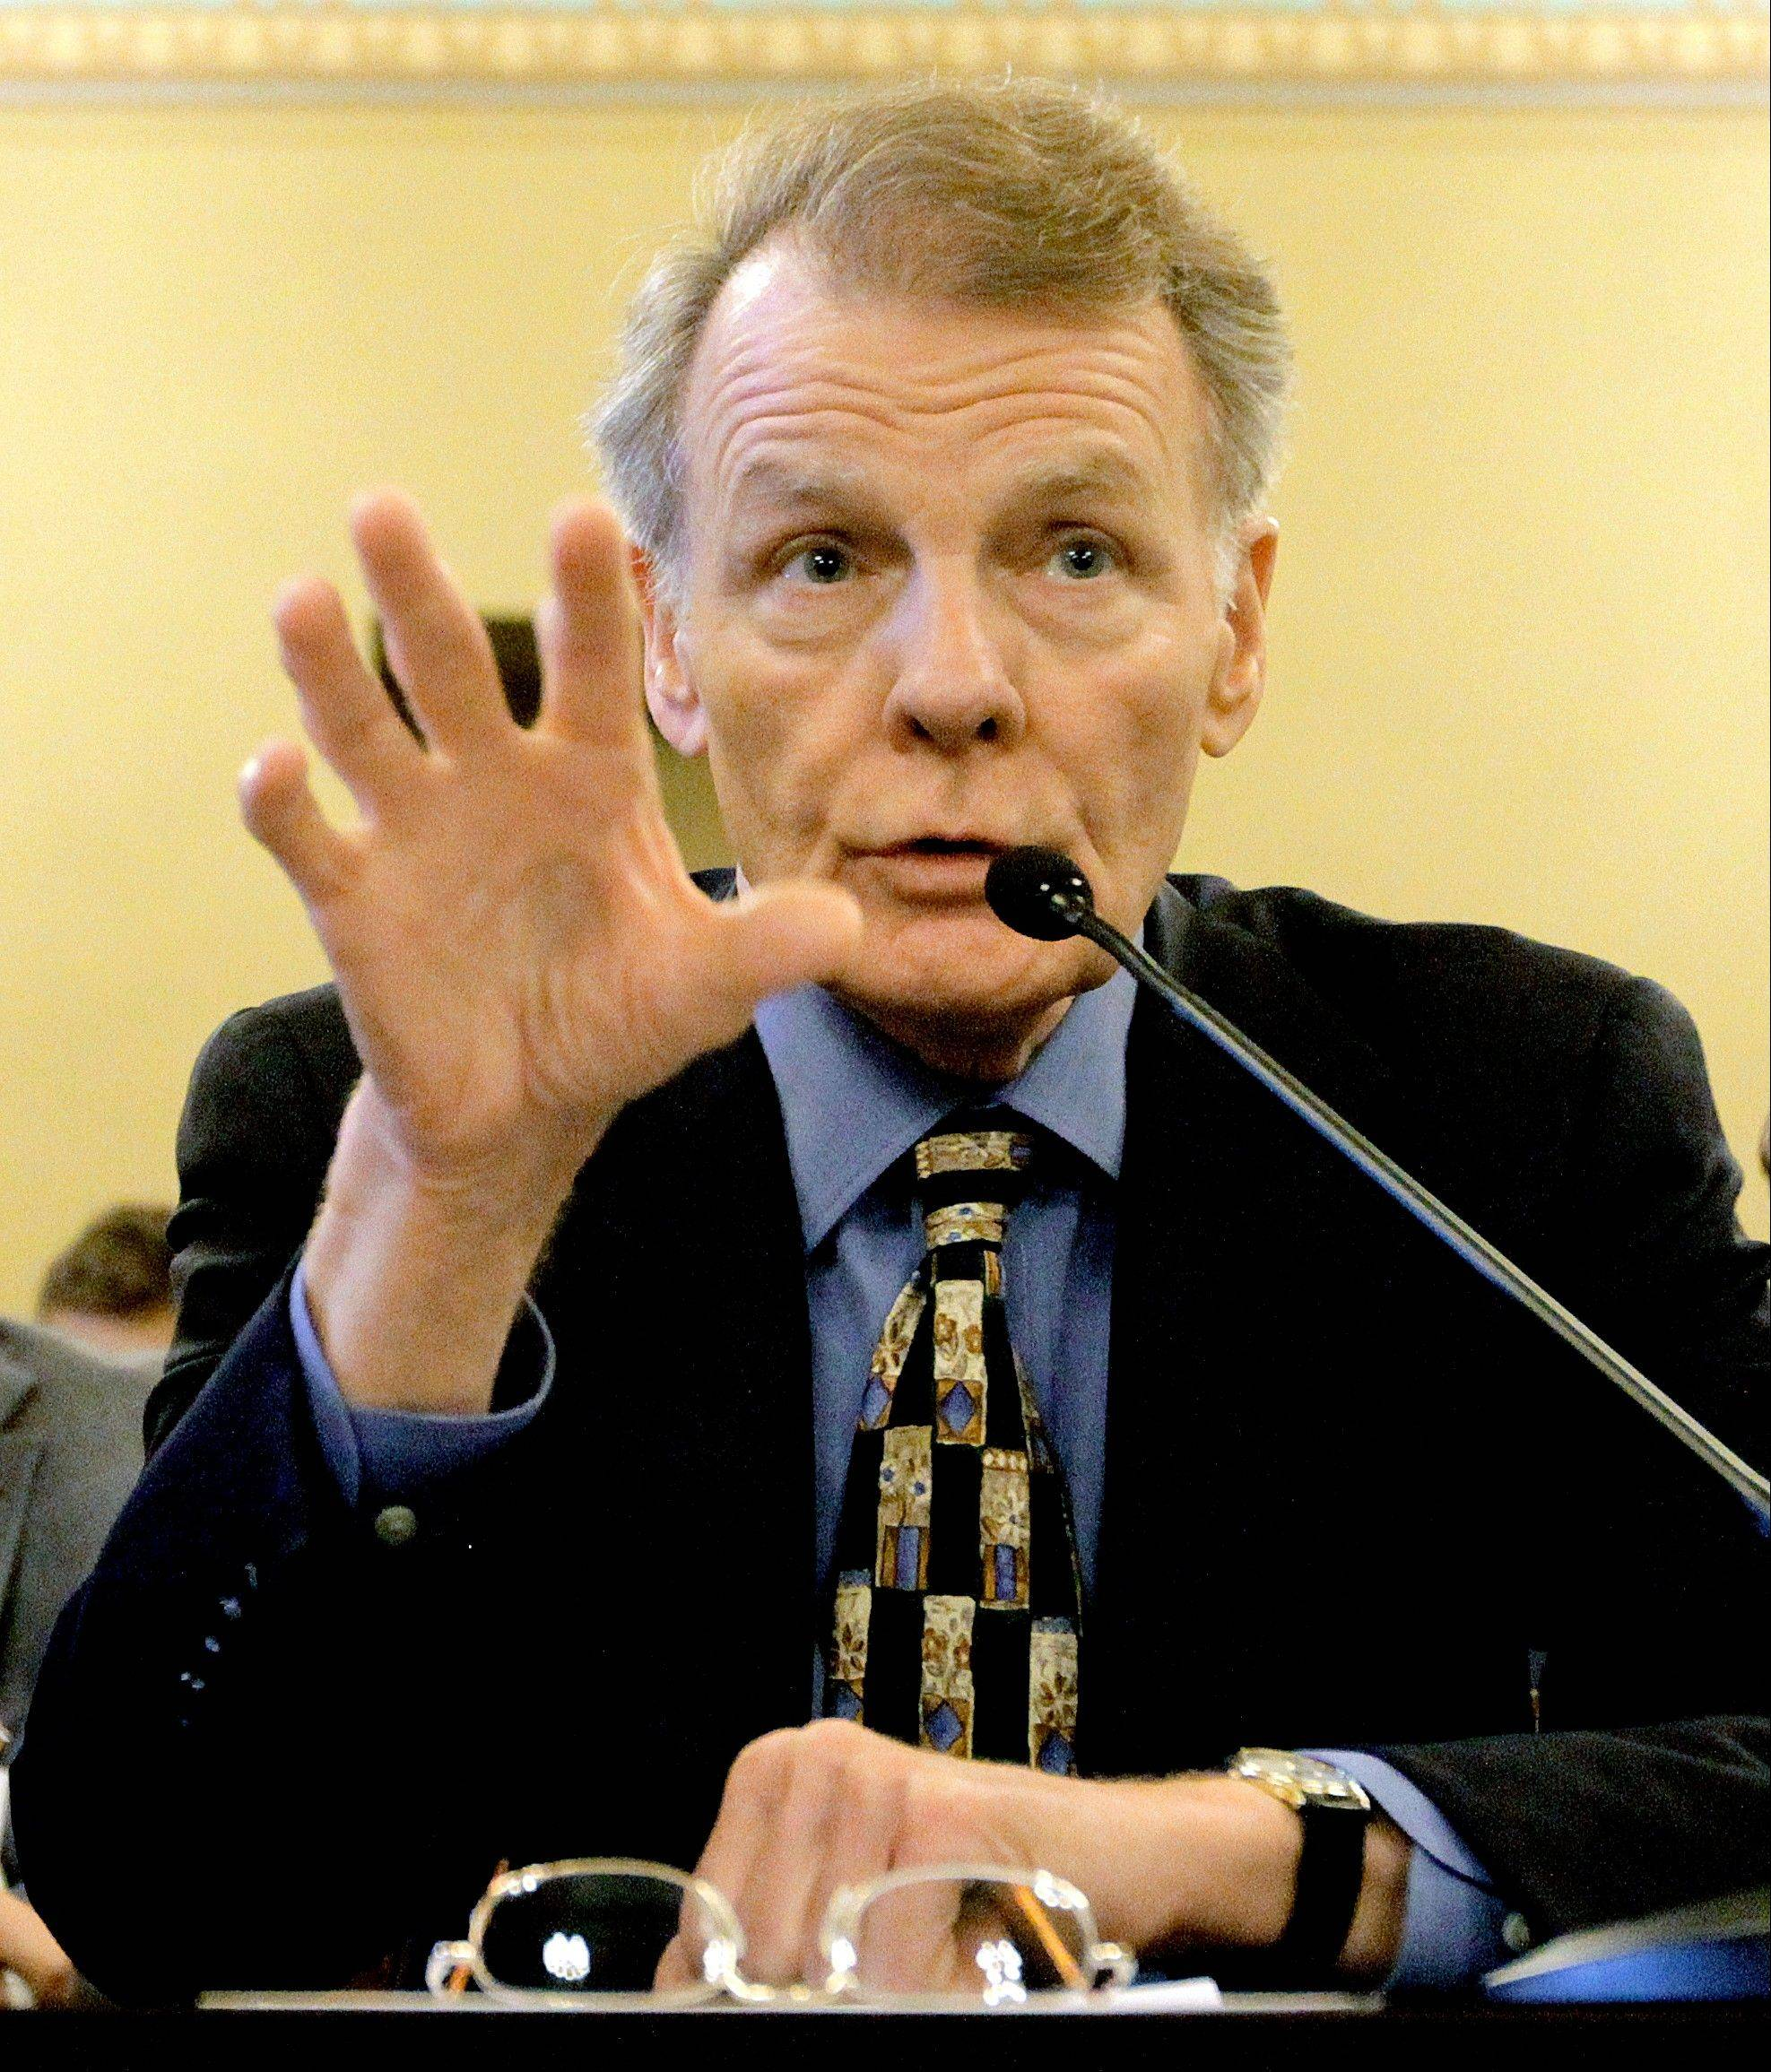 Illinois Speaker of the House Michael Madigan has declined the invitation from a union coalition to attend a Feb. 11 pension summit.